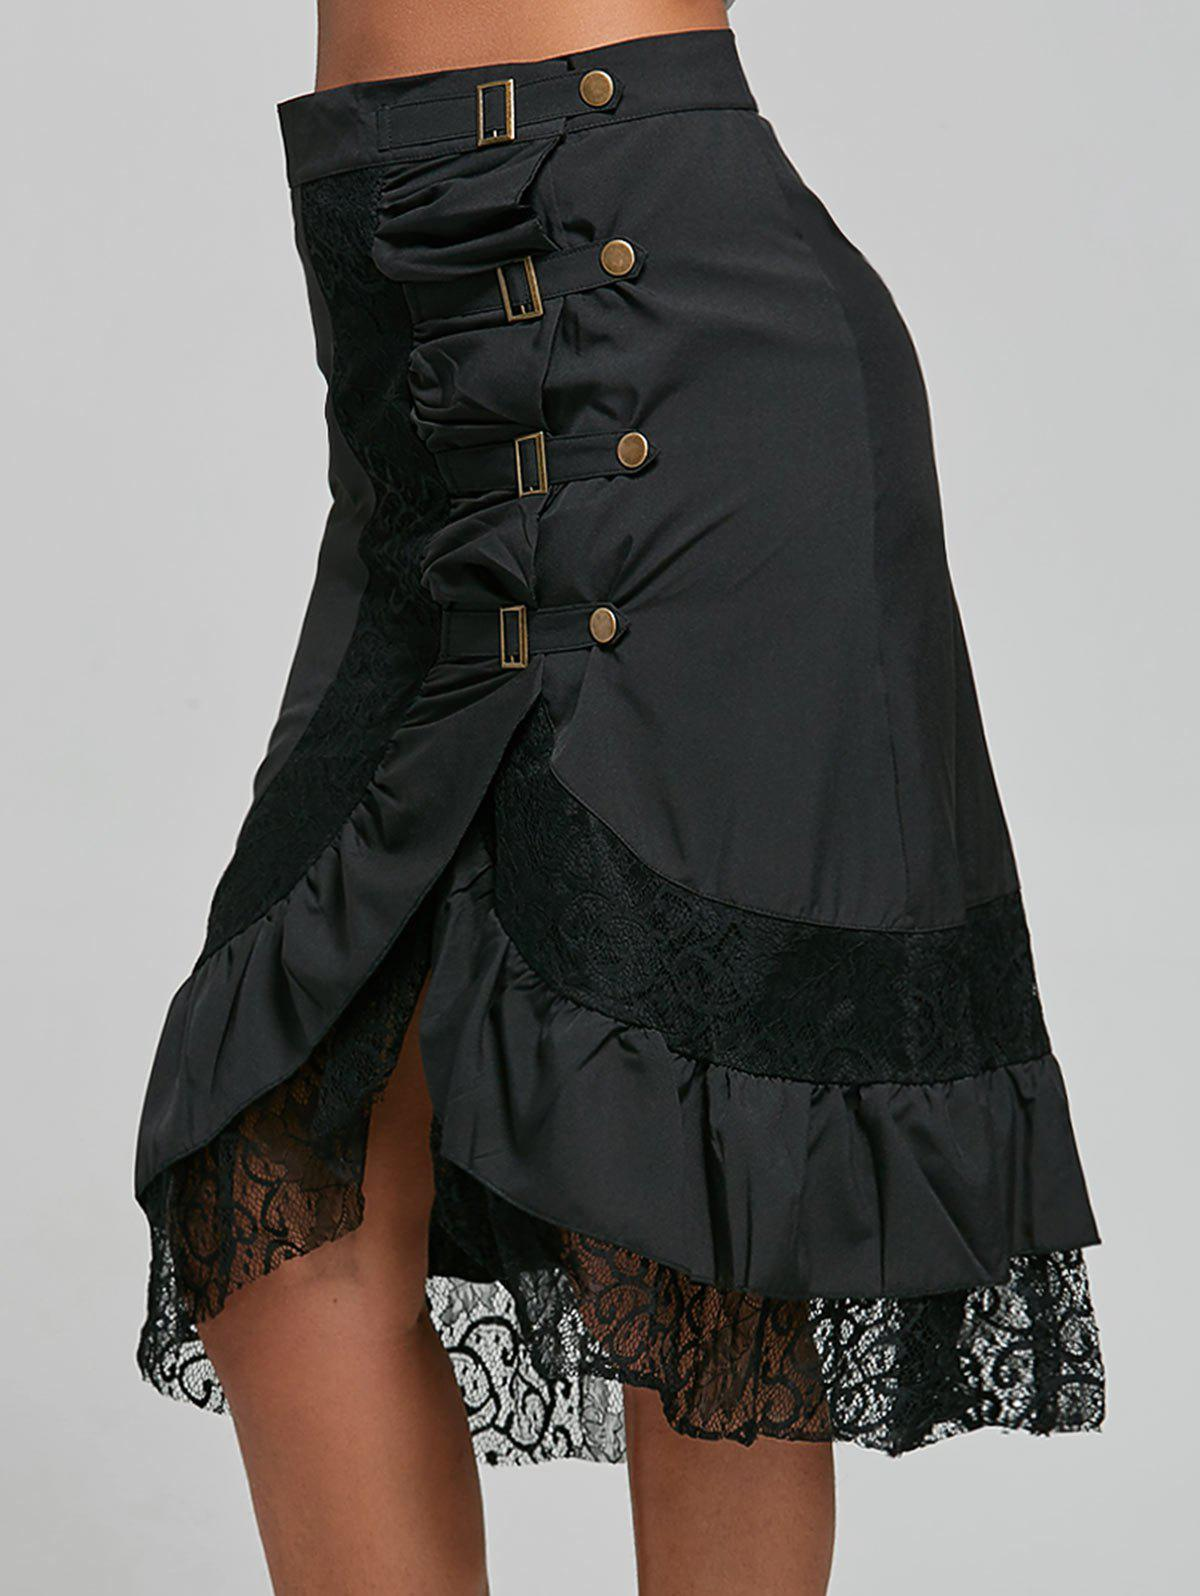 Punk Style Riveted Black Laced Skirt For Women - BLACK S